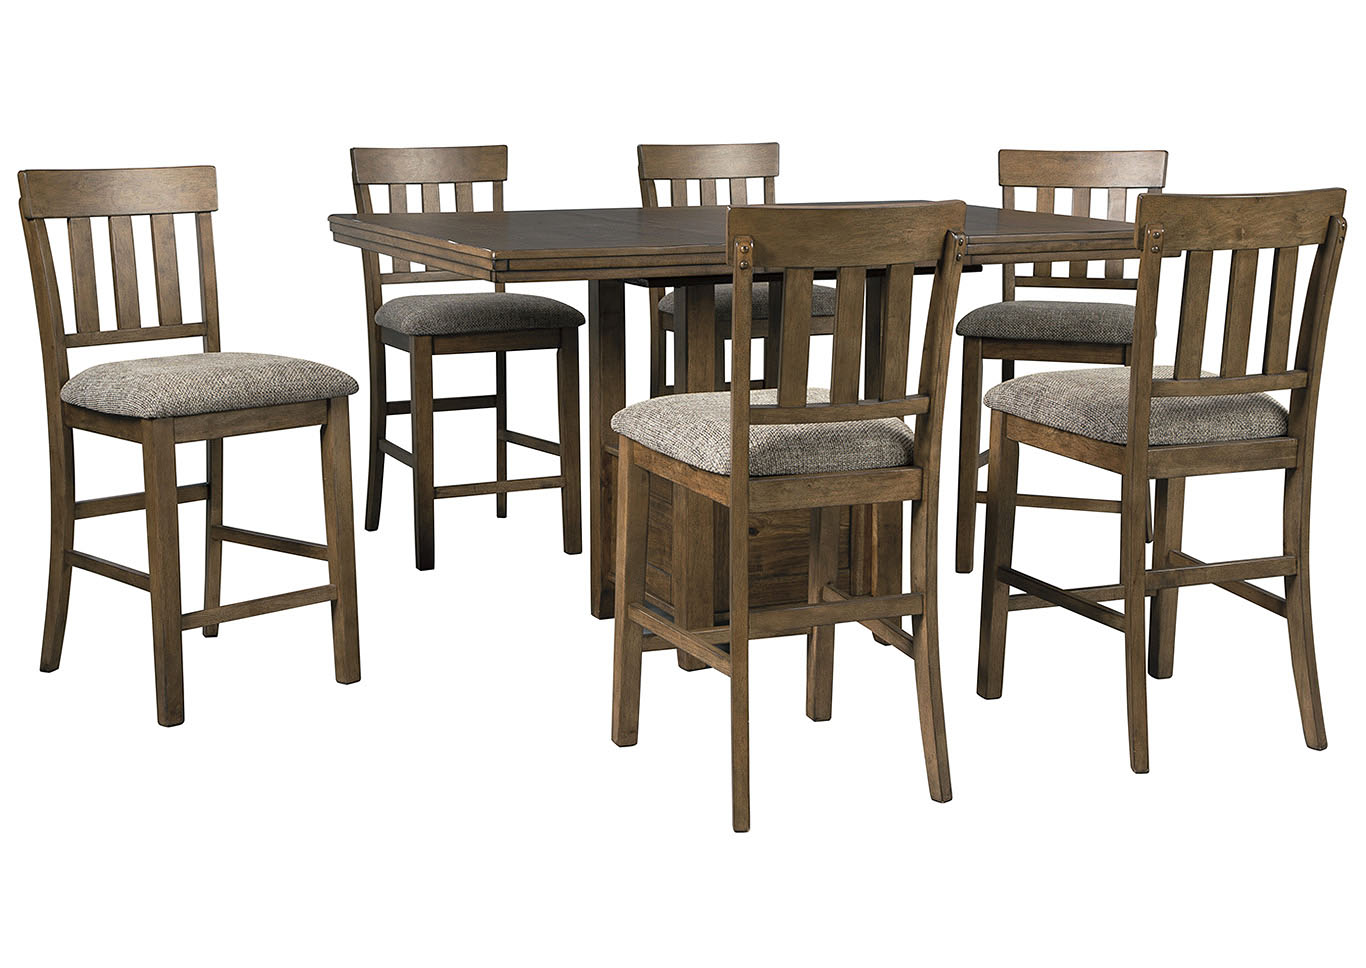 Flaybern Brown Counter Height Table w/6 Bar Stools,Benchcraft